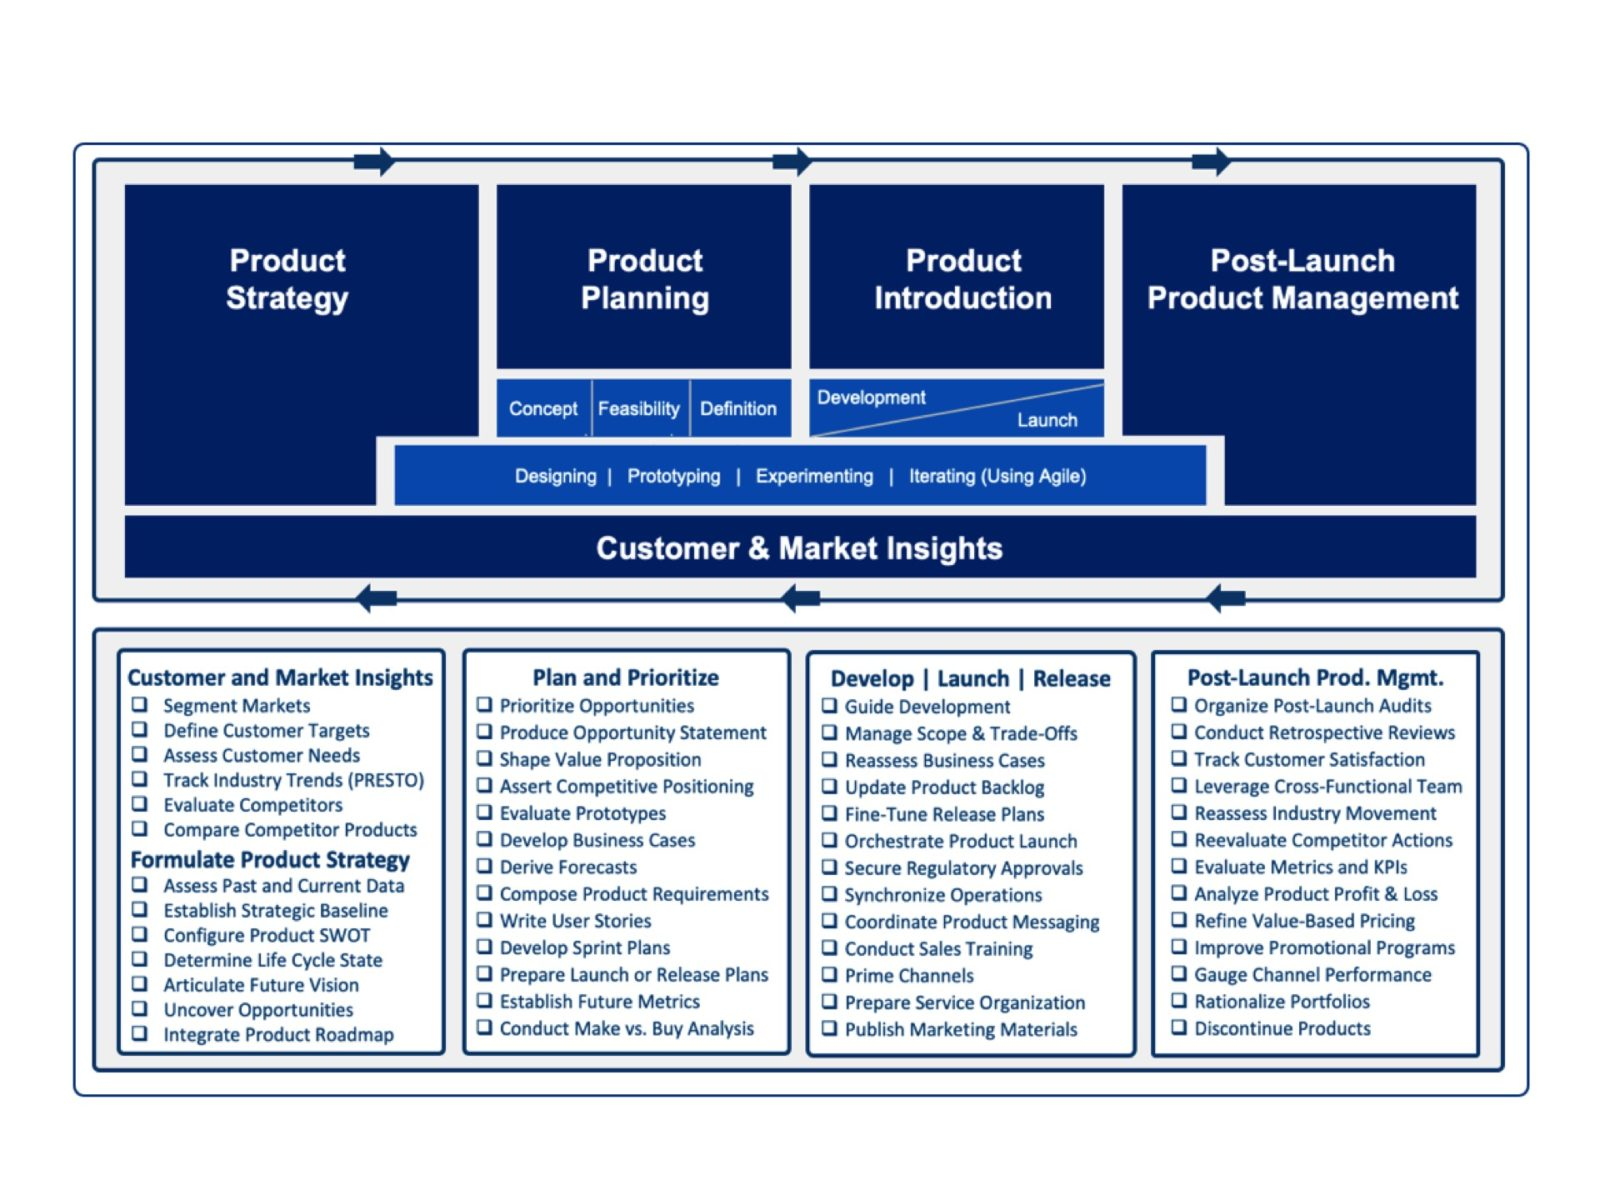 sequent learning networks product management framework